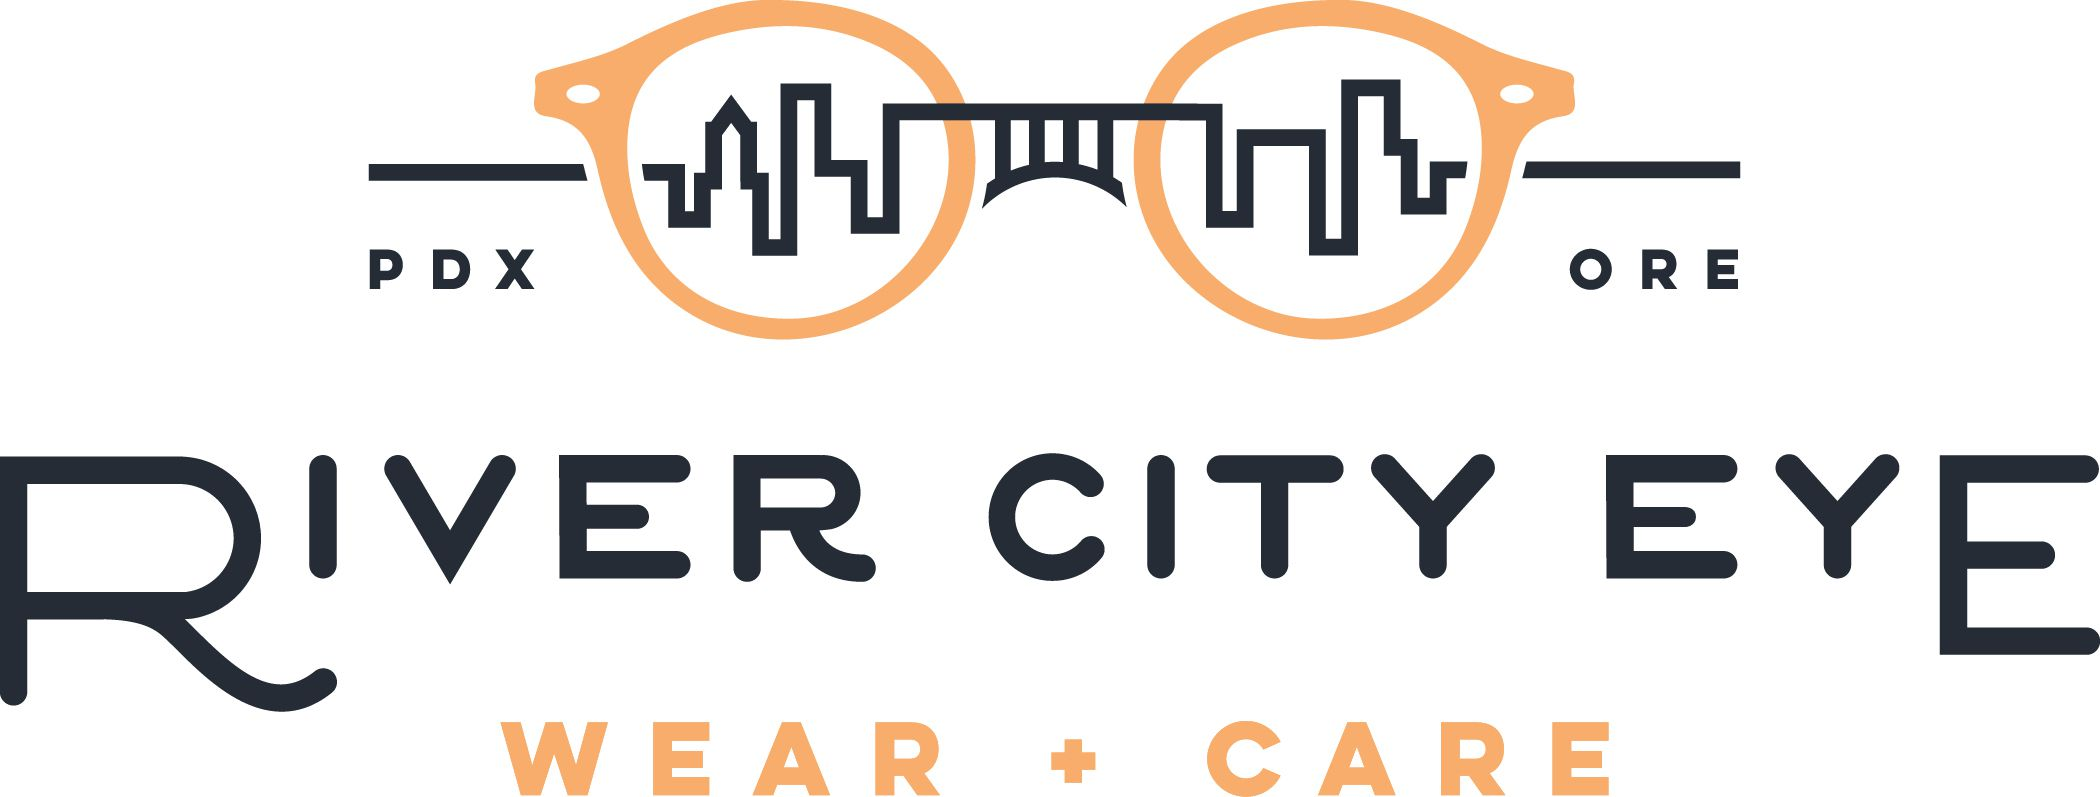 609d4bc120bb Home - River City Eye  exams